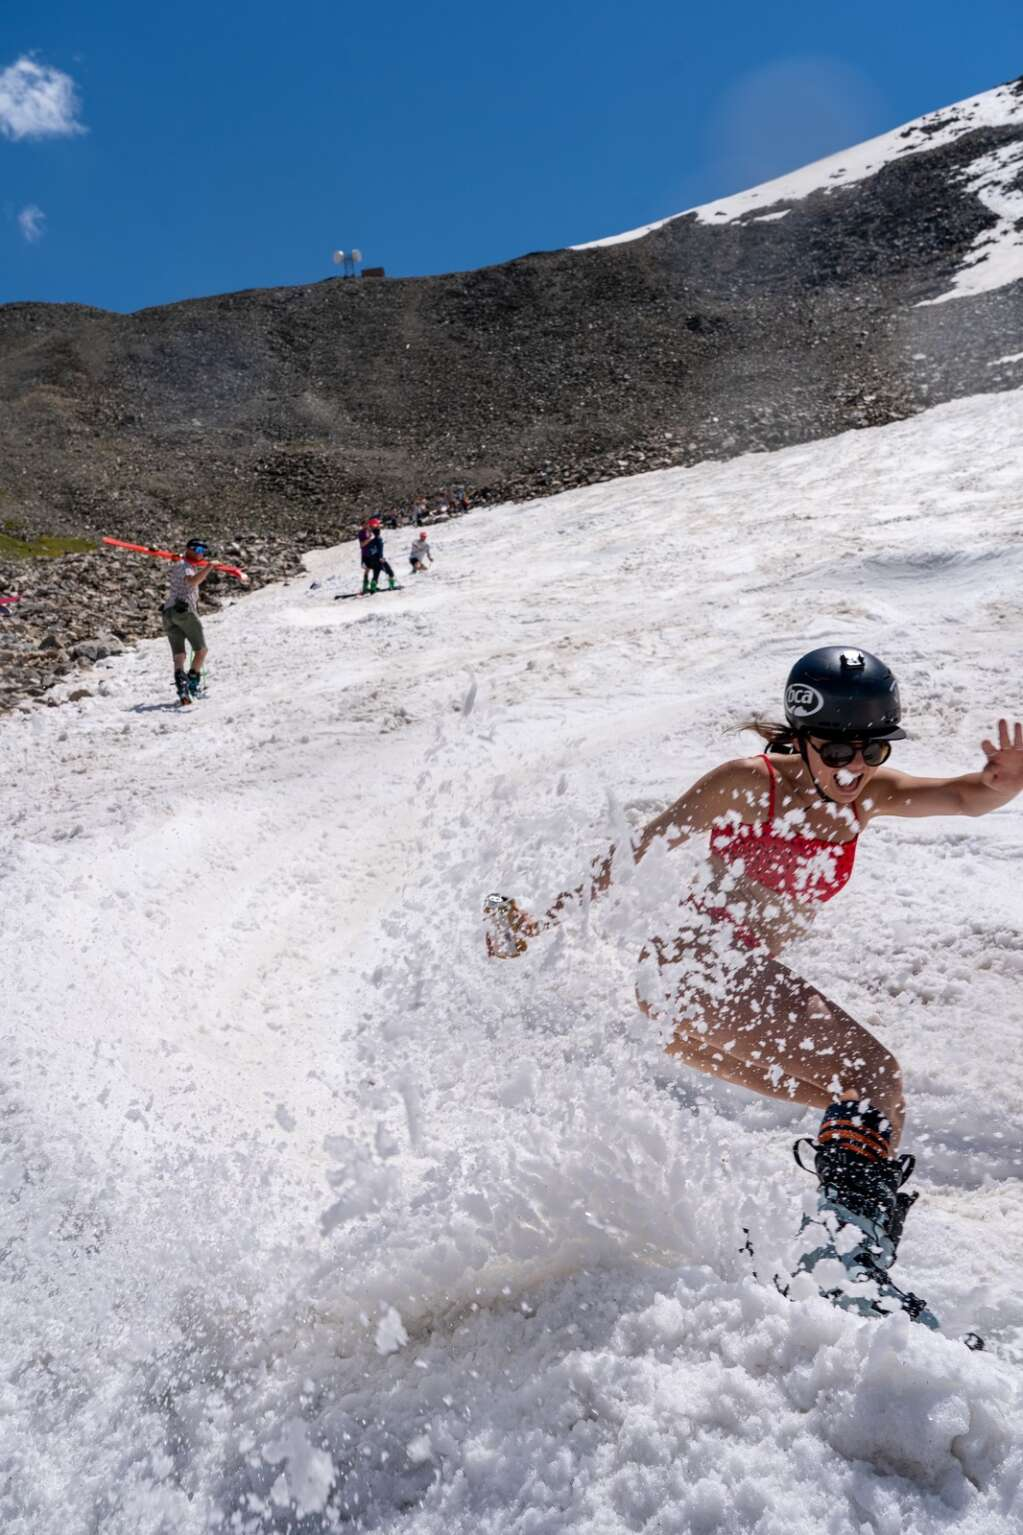 Skiers and riders celebrate Independence Day high up in the Tenmile Range ripping up summer slush at Fourth of July Bowl on Peak 10 at Sunday's fourth annual Peak 10 Classic. | Photo by Sage Vogt